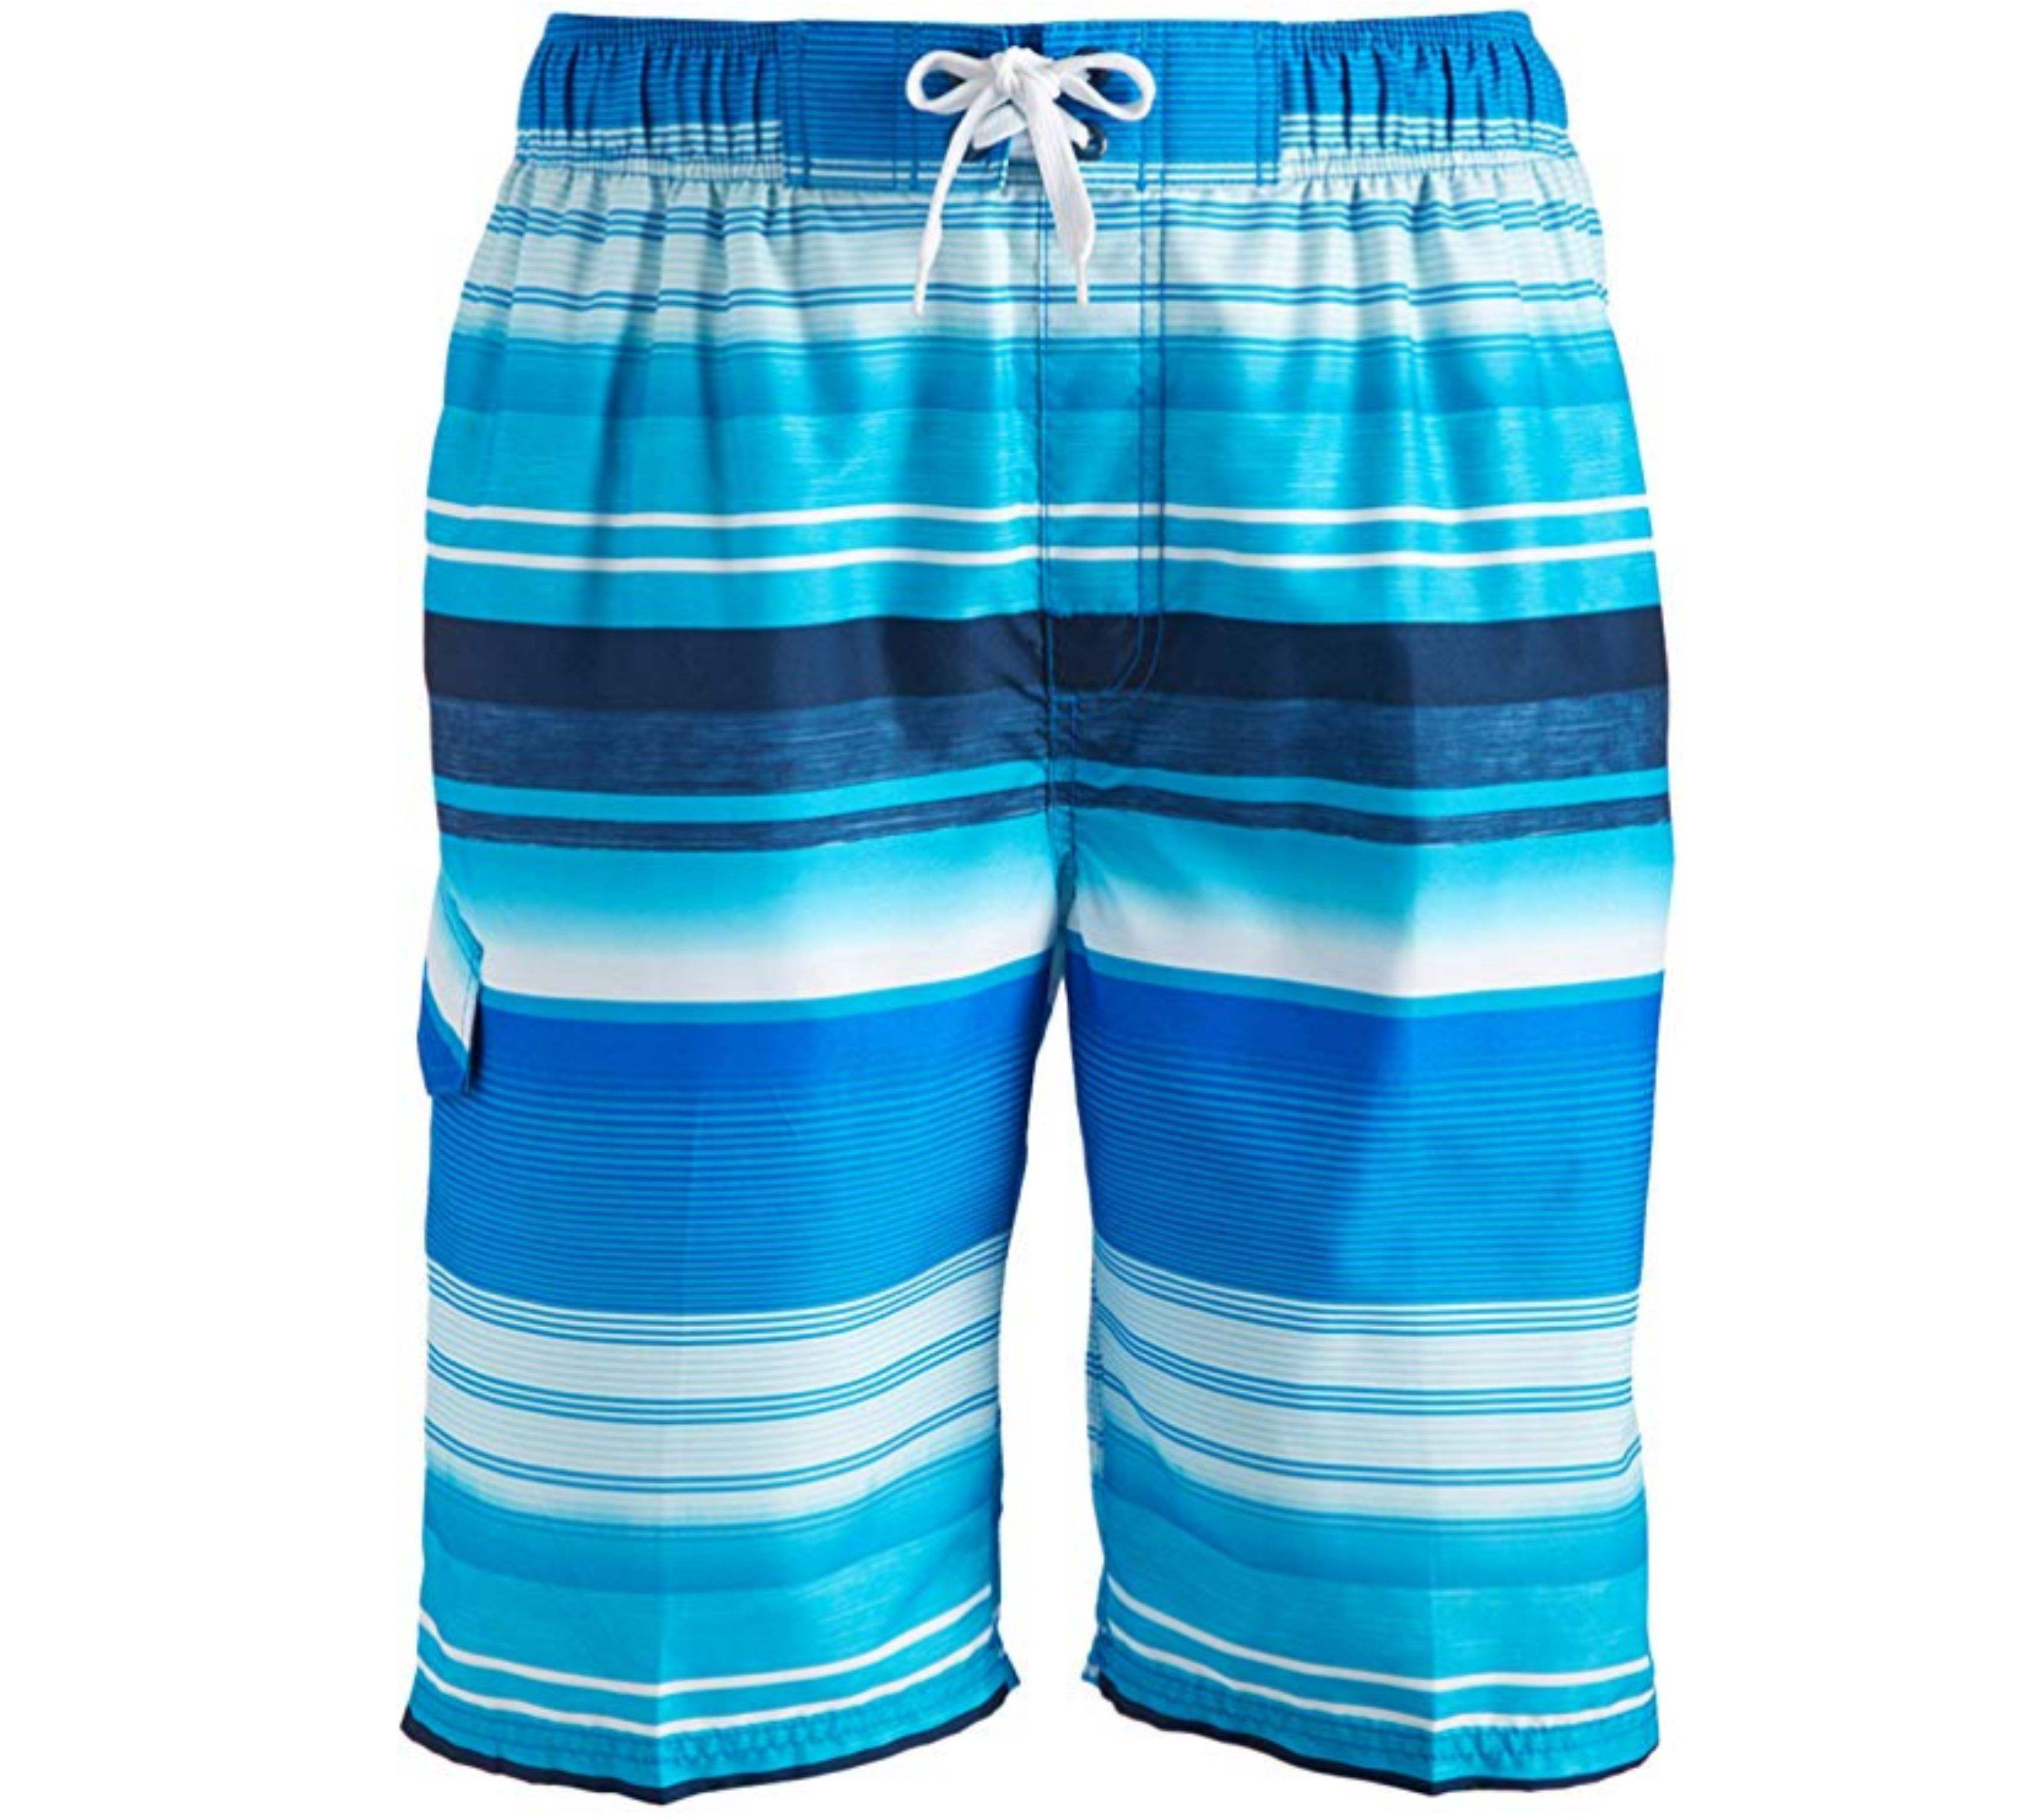 Men's Quick Dry Trunk Beach Board Short